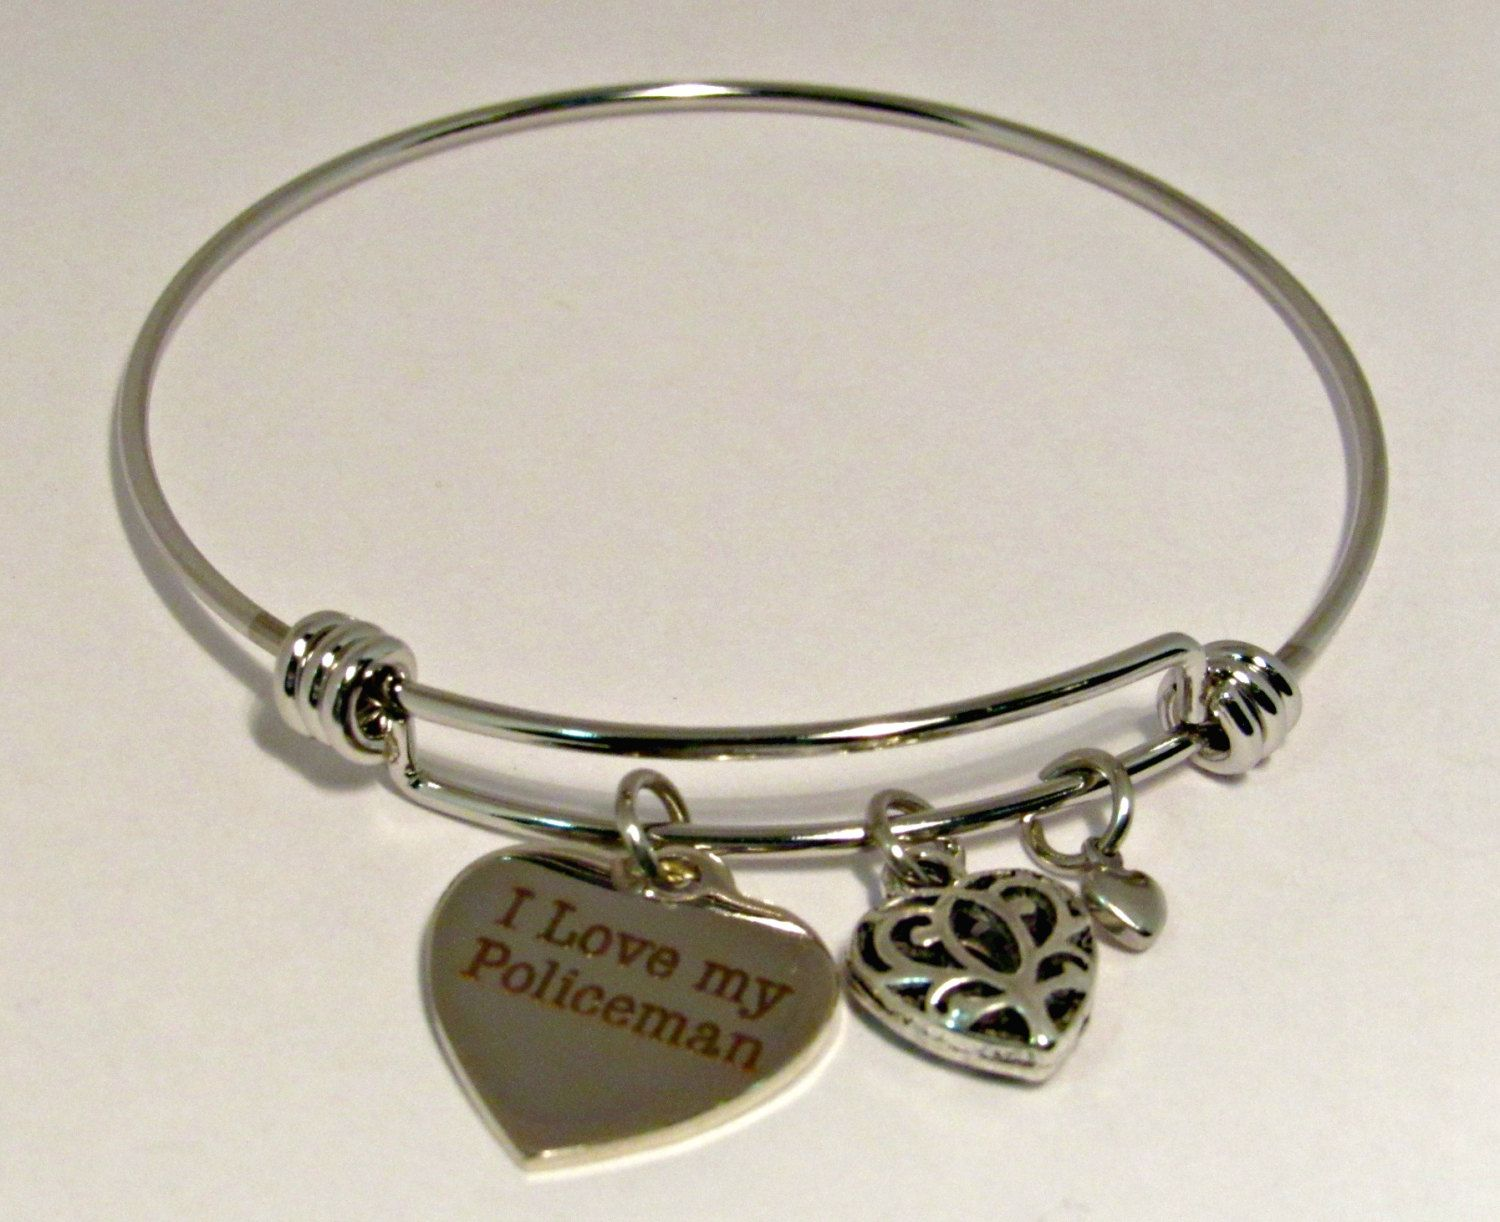 eg kd engraved bunny steel jewelry stainless charm bangles heart bracelets bangle name and